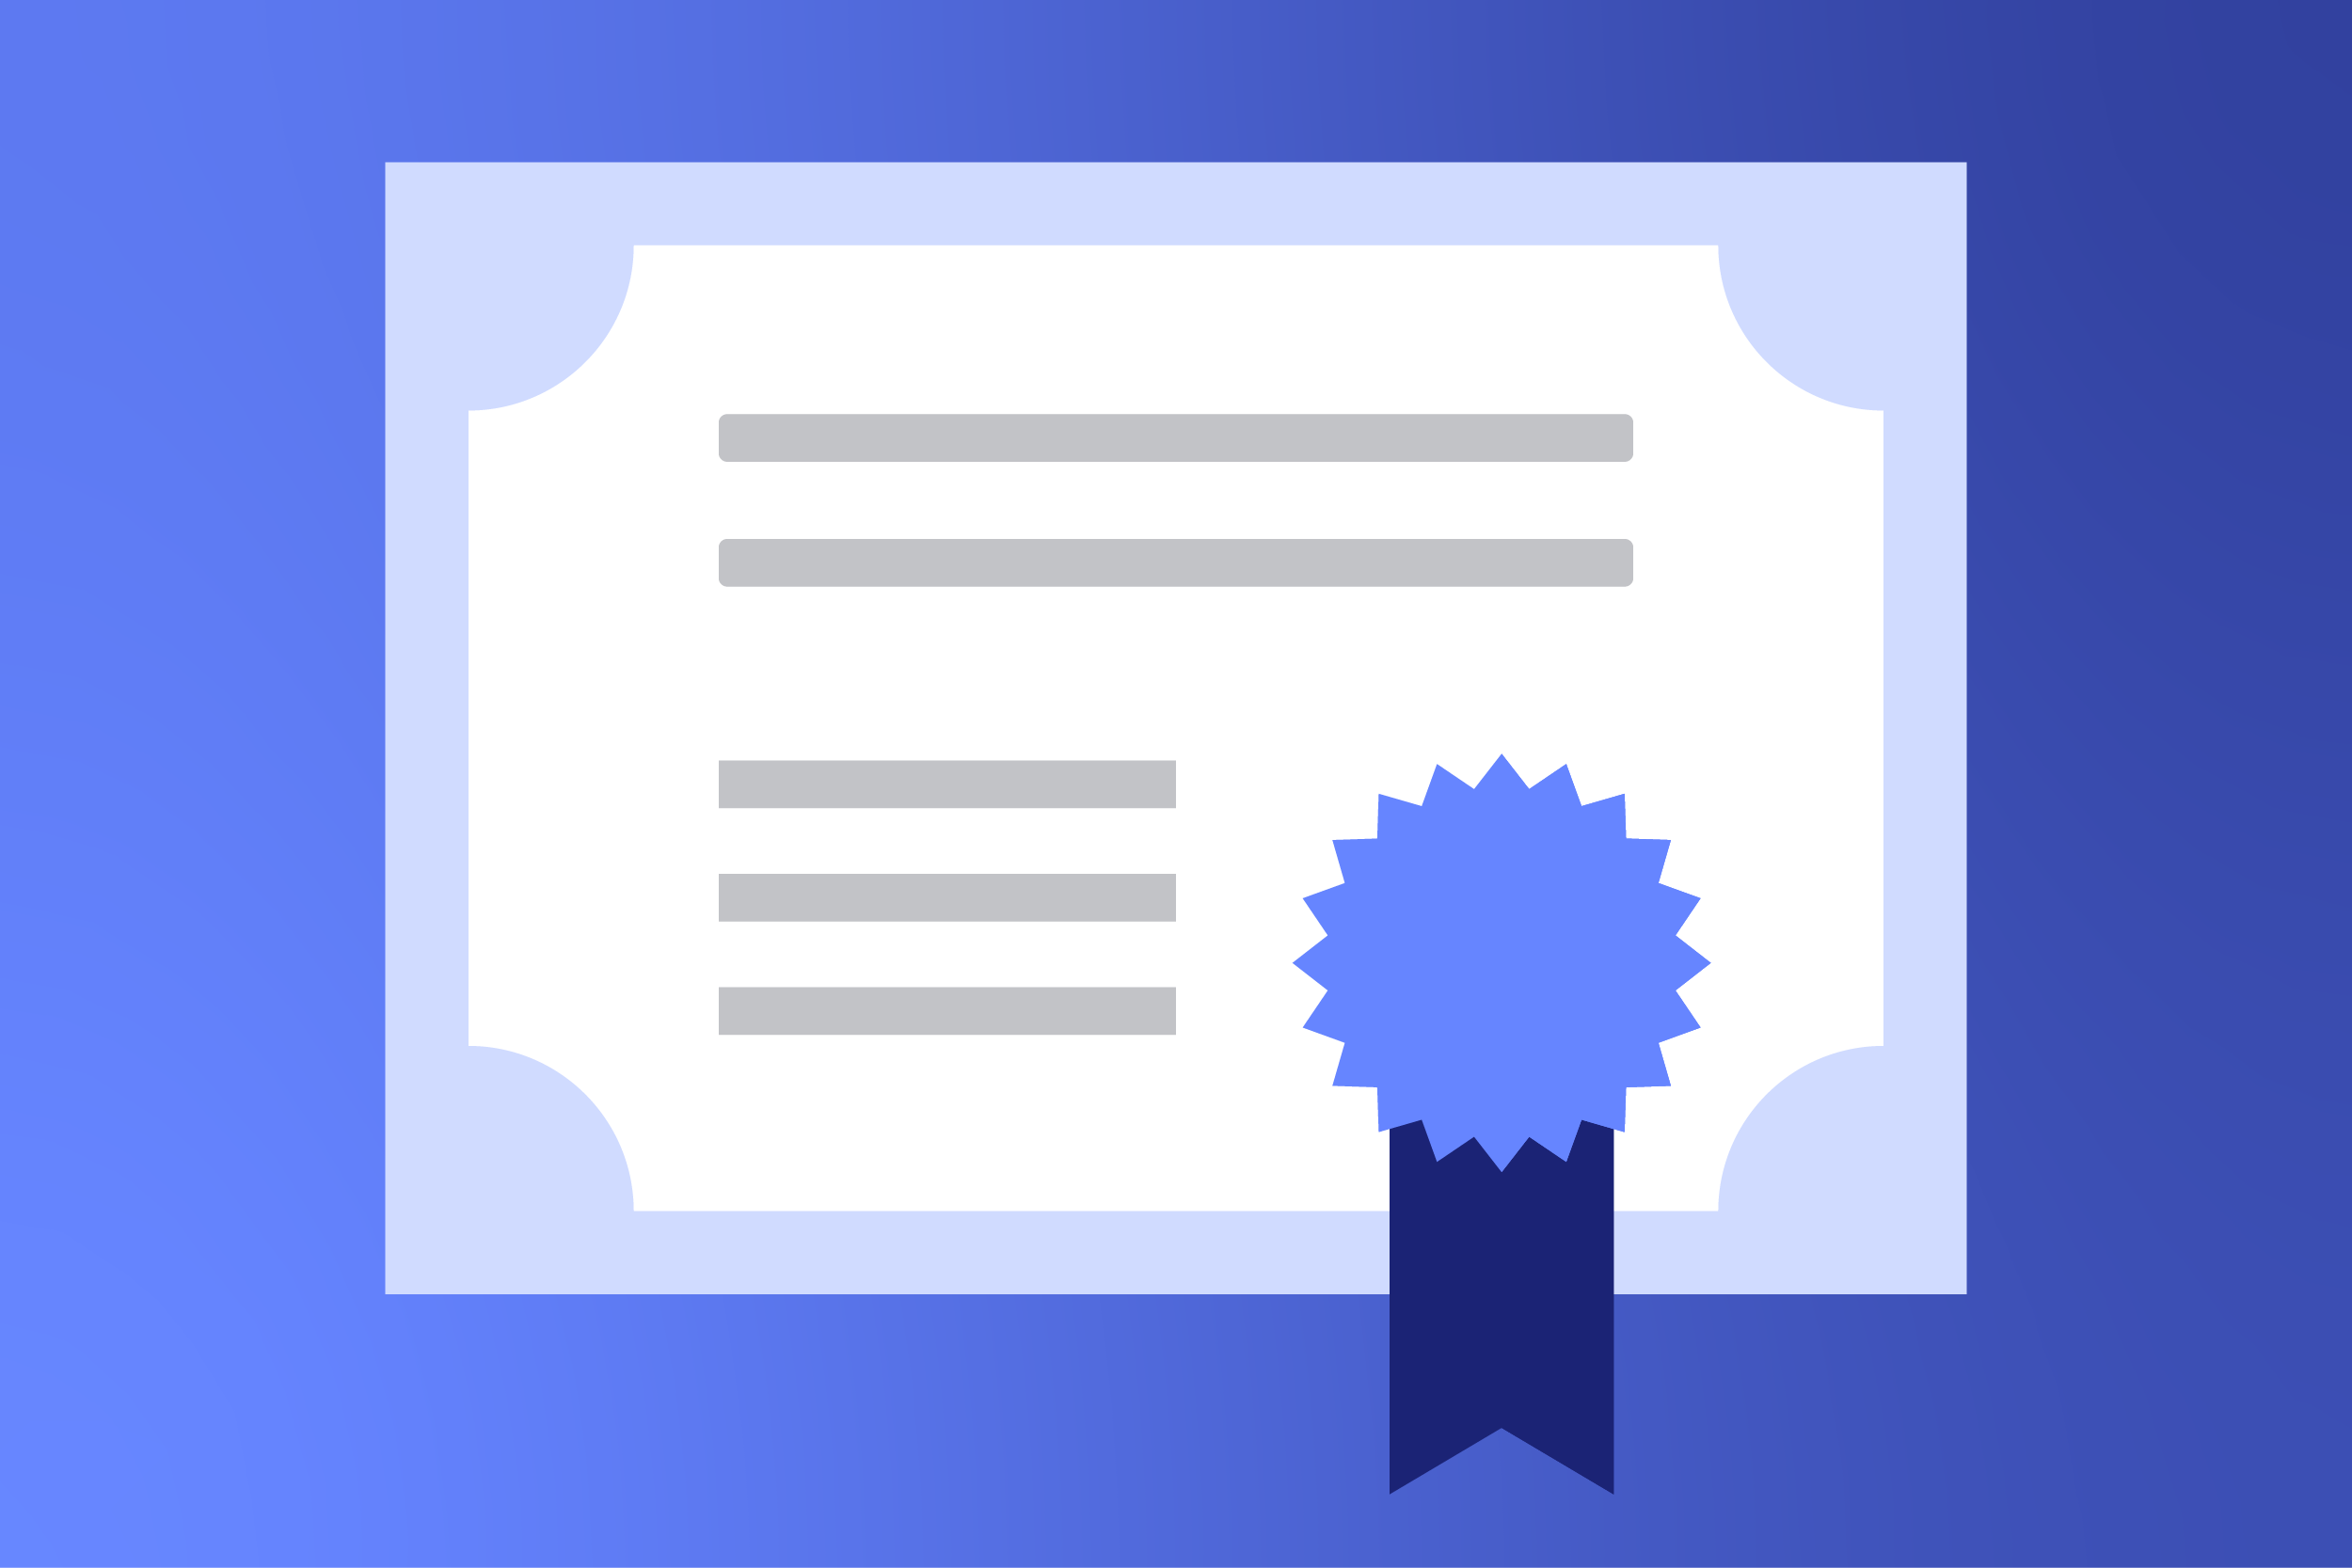 Documenting & Discussing Certifications During Your Job Hunt